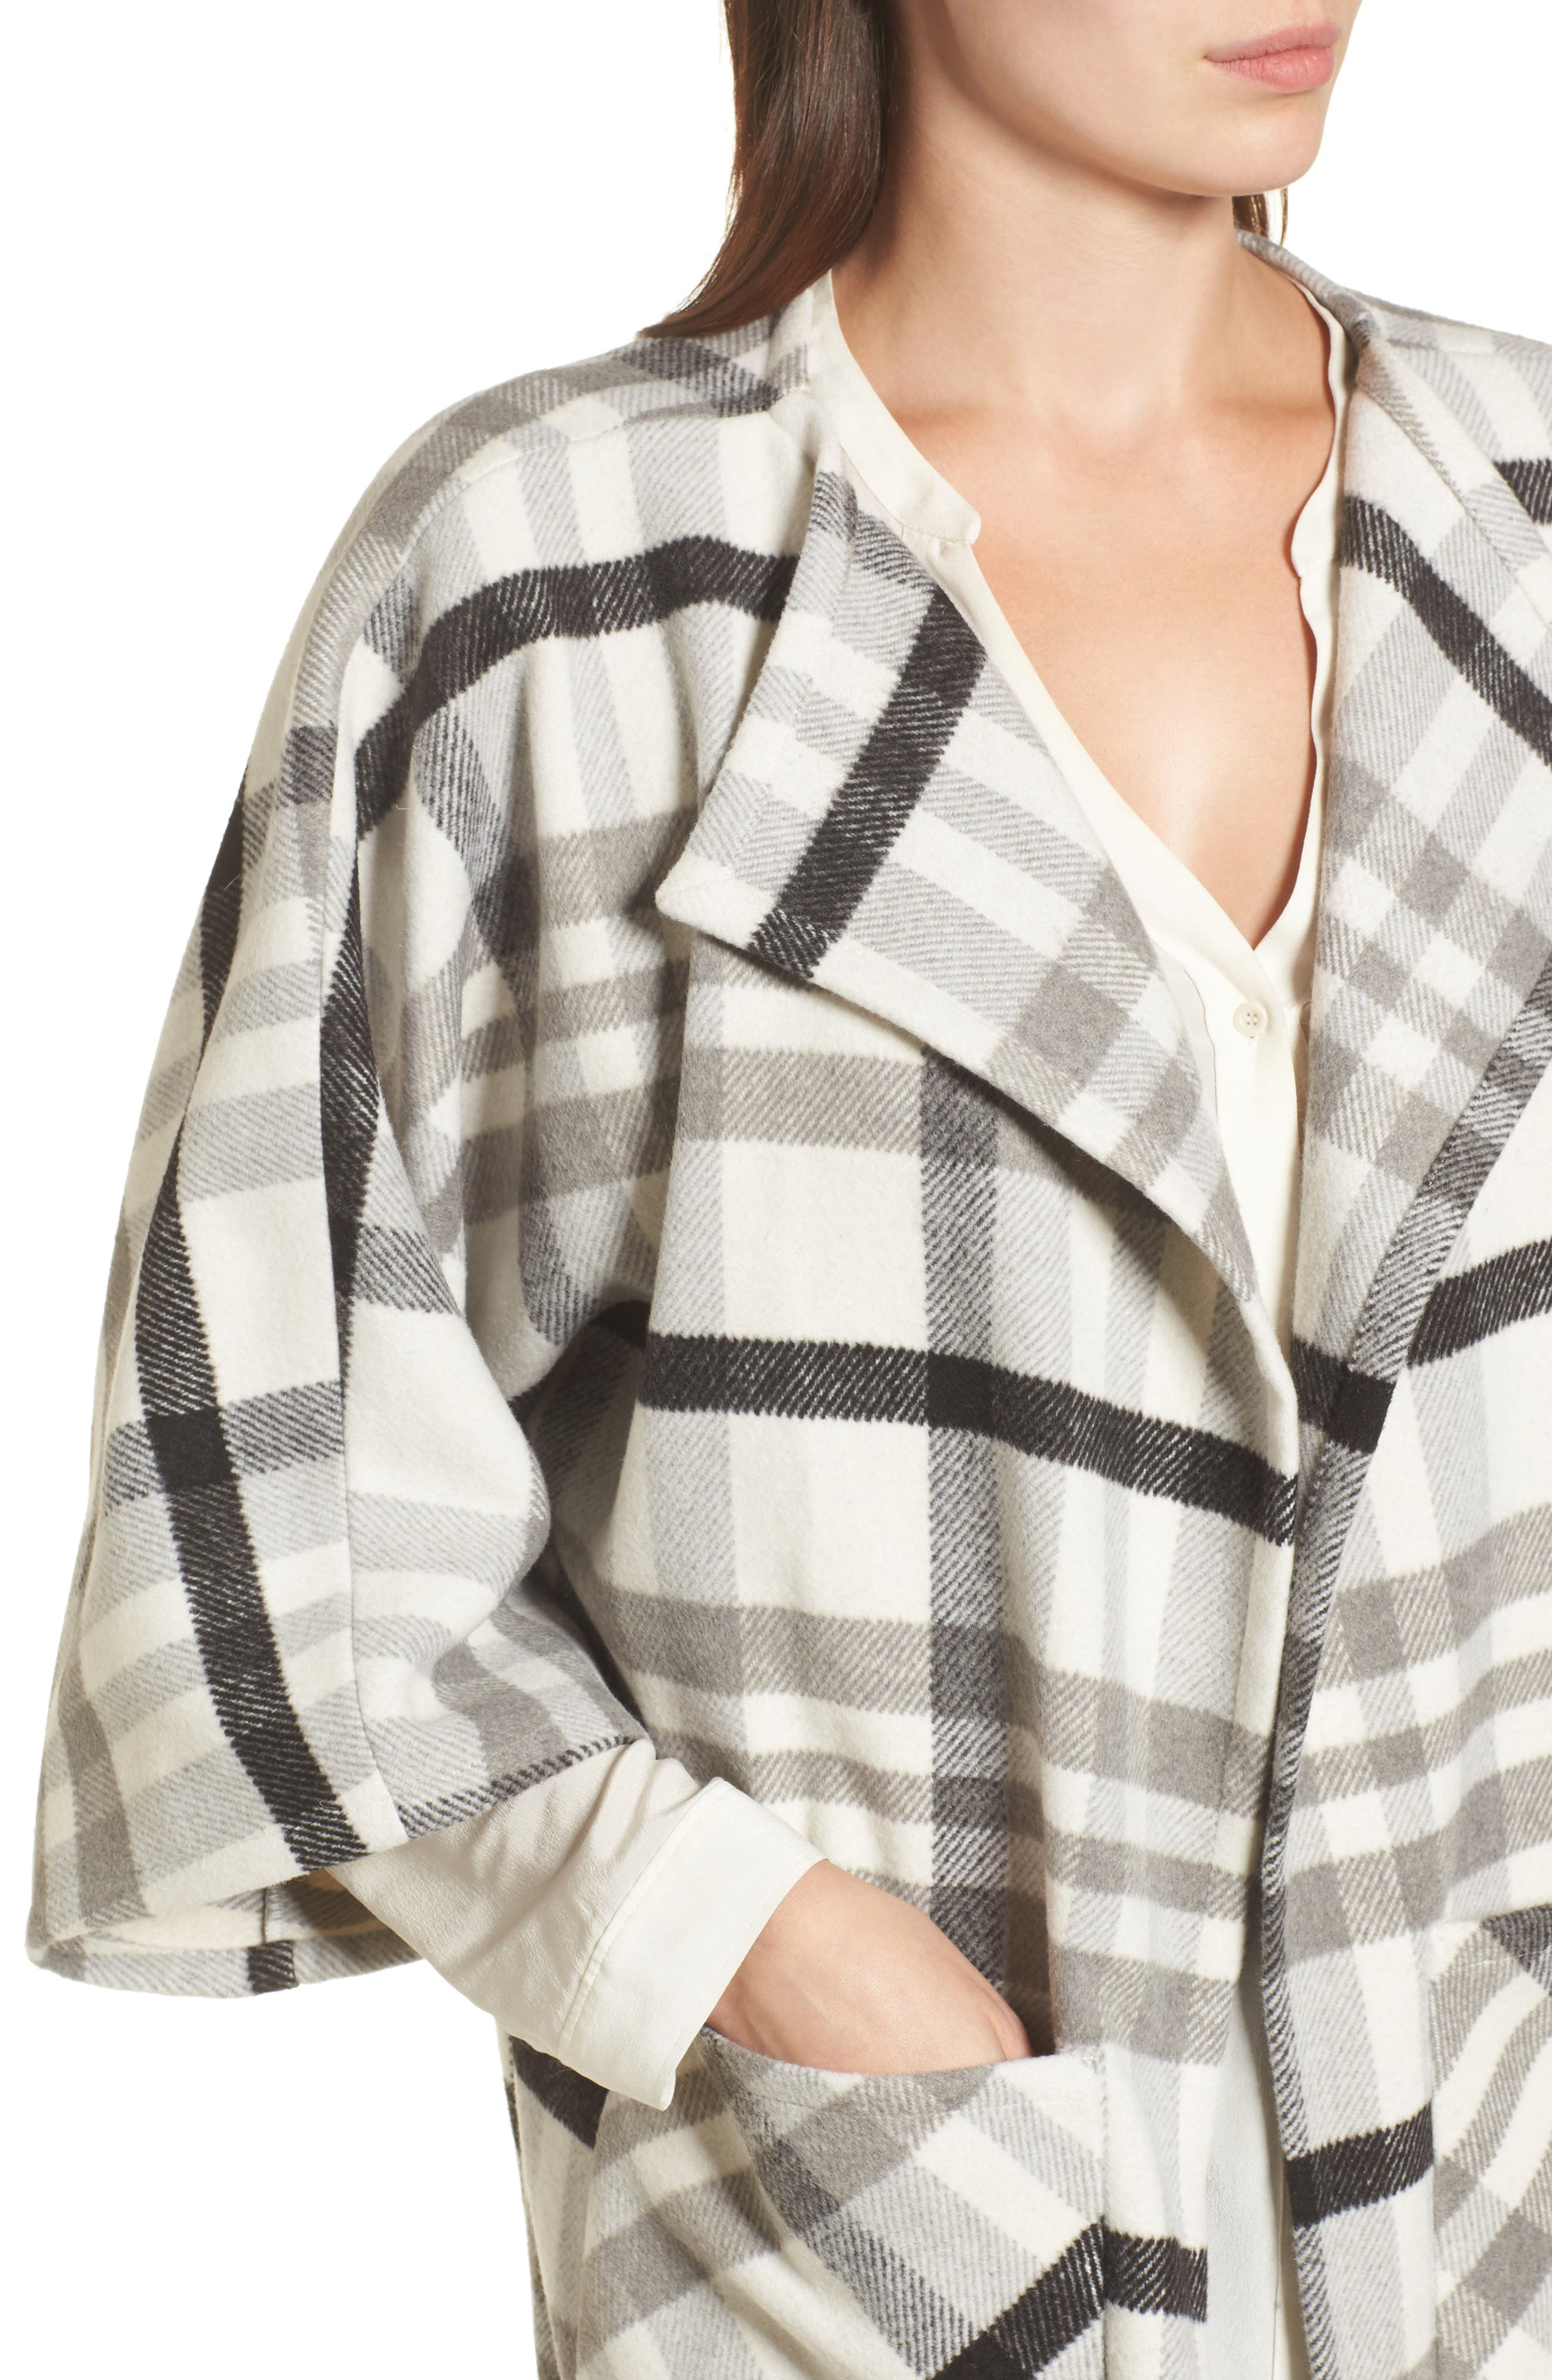 Woven Plaid Wrap,                             Alternate thumbnail 4, color,                             Ivory Combo